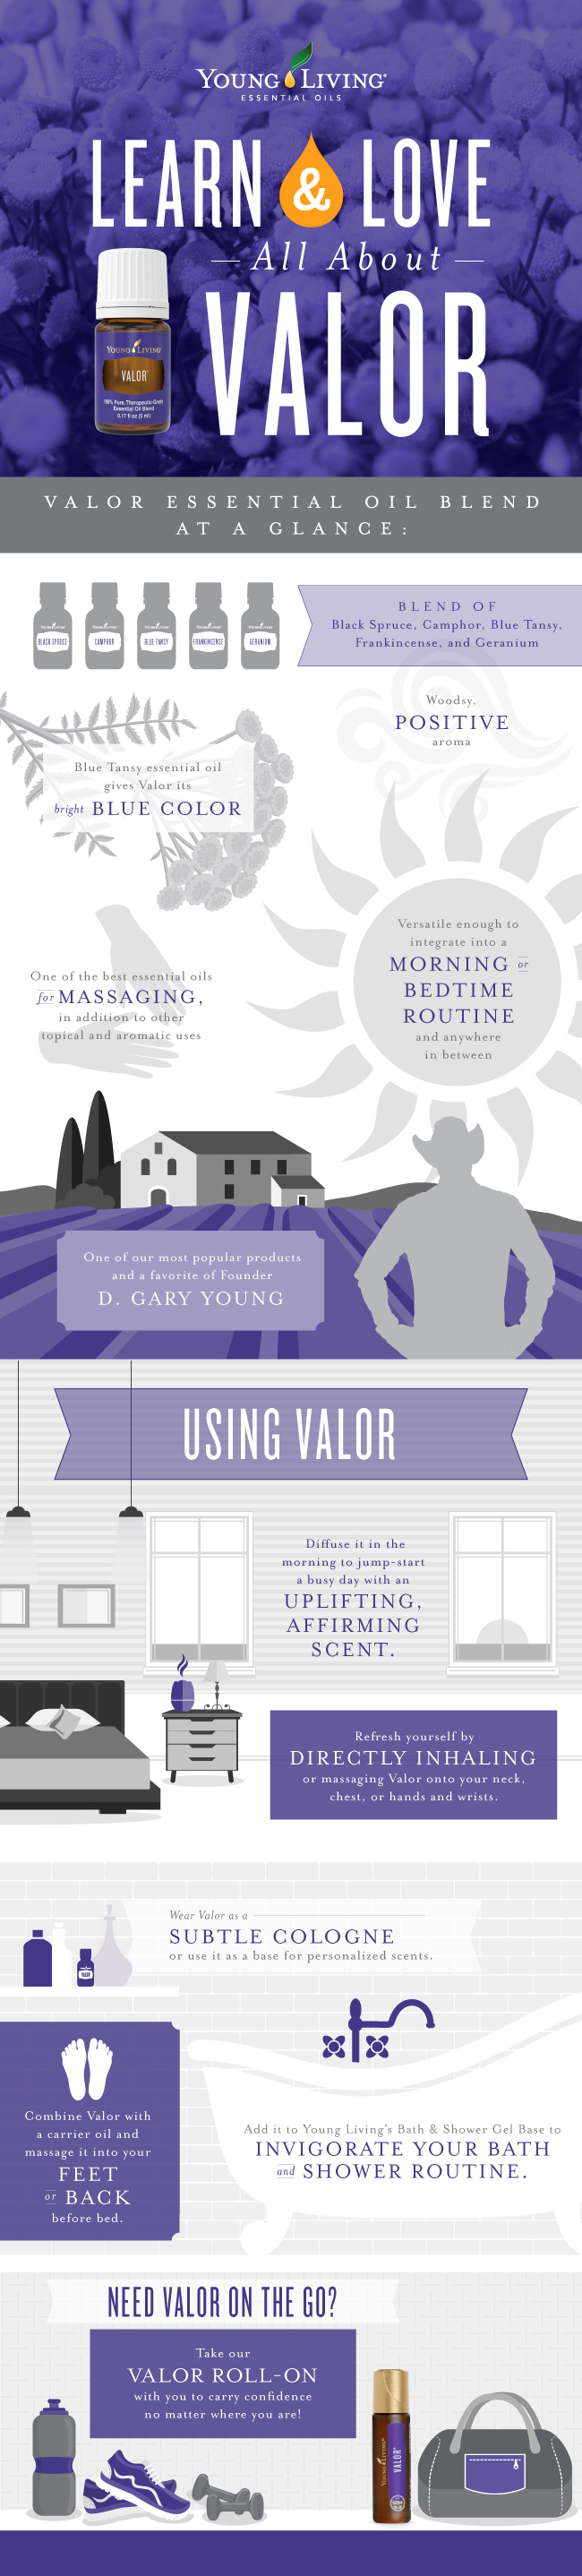 All about Valor essential oil blend